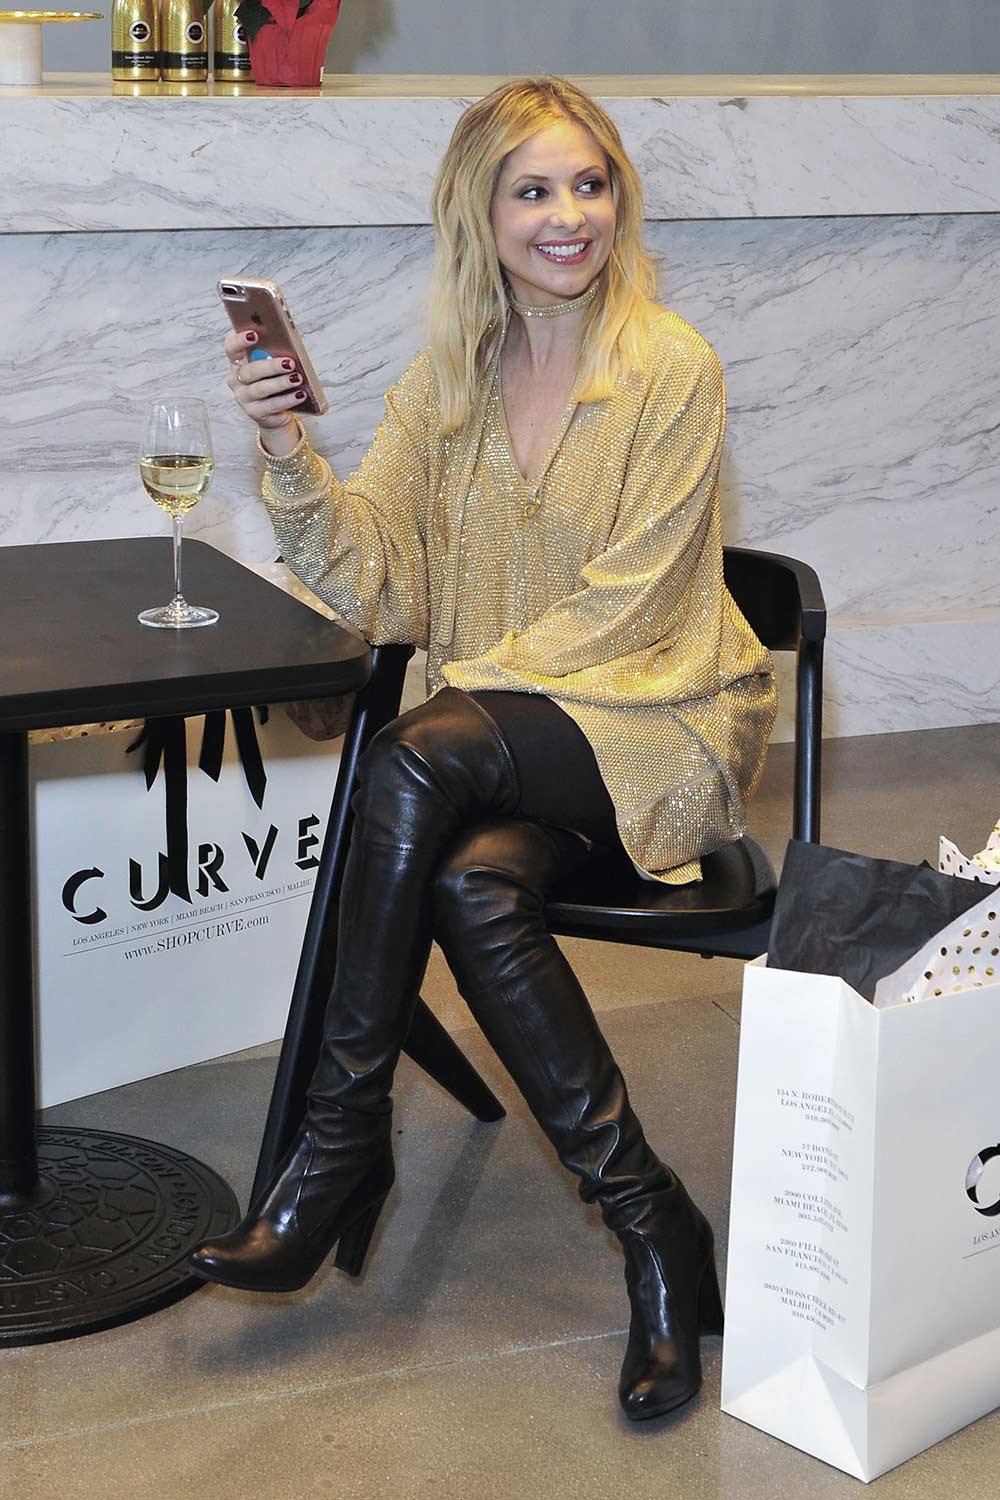 Sarah Michelle Gellar enjoys Sauvignon blanc in Limited Edition Holiday Bottle